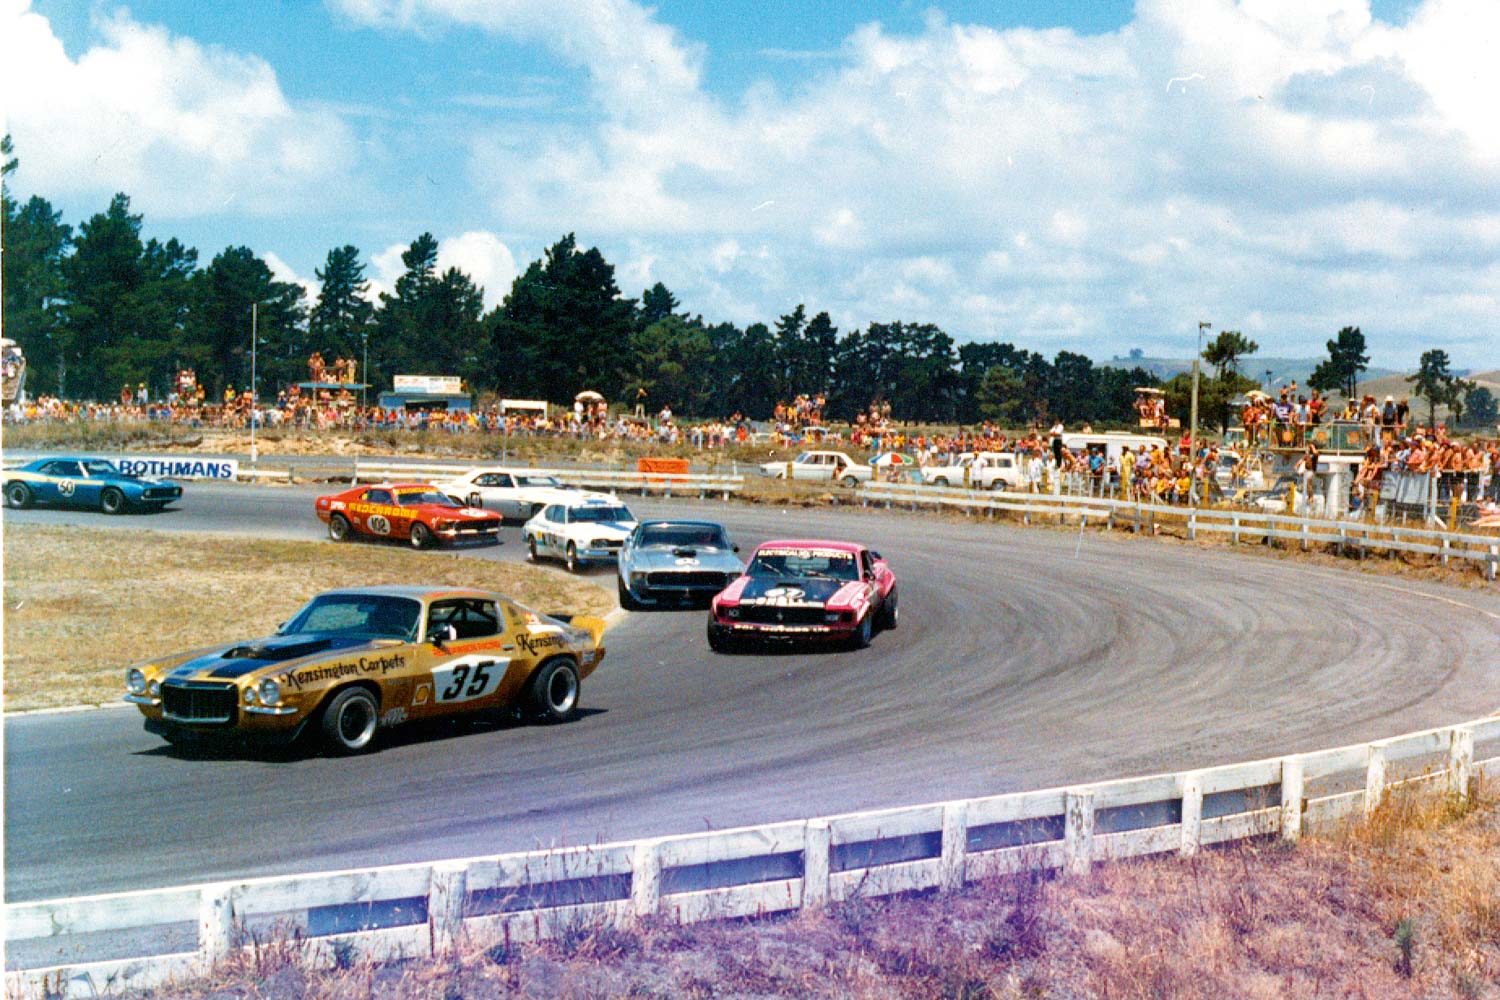 Bay Park big-bangers, with Red Dawson in the Camaro leading Graham Baker, Allan Moffat, Paul Fahey, Jim Richards, and Rod Coppins